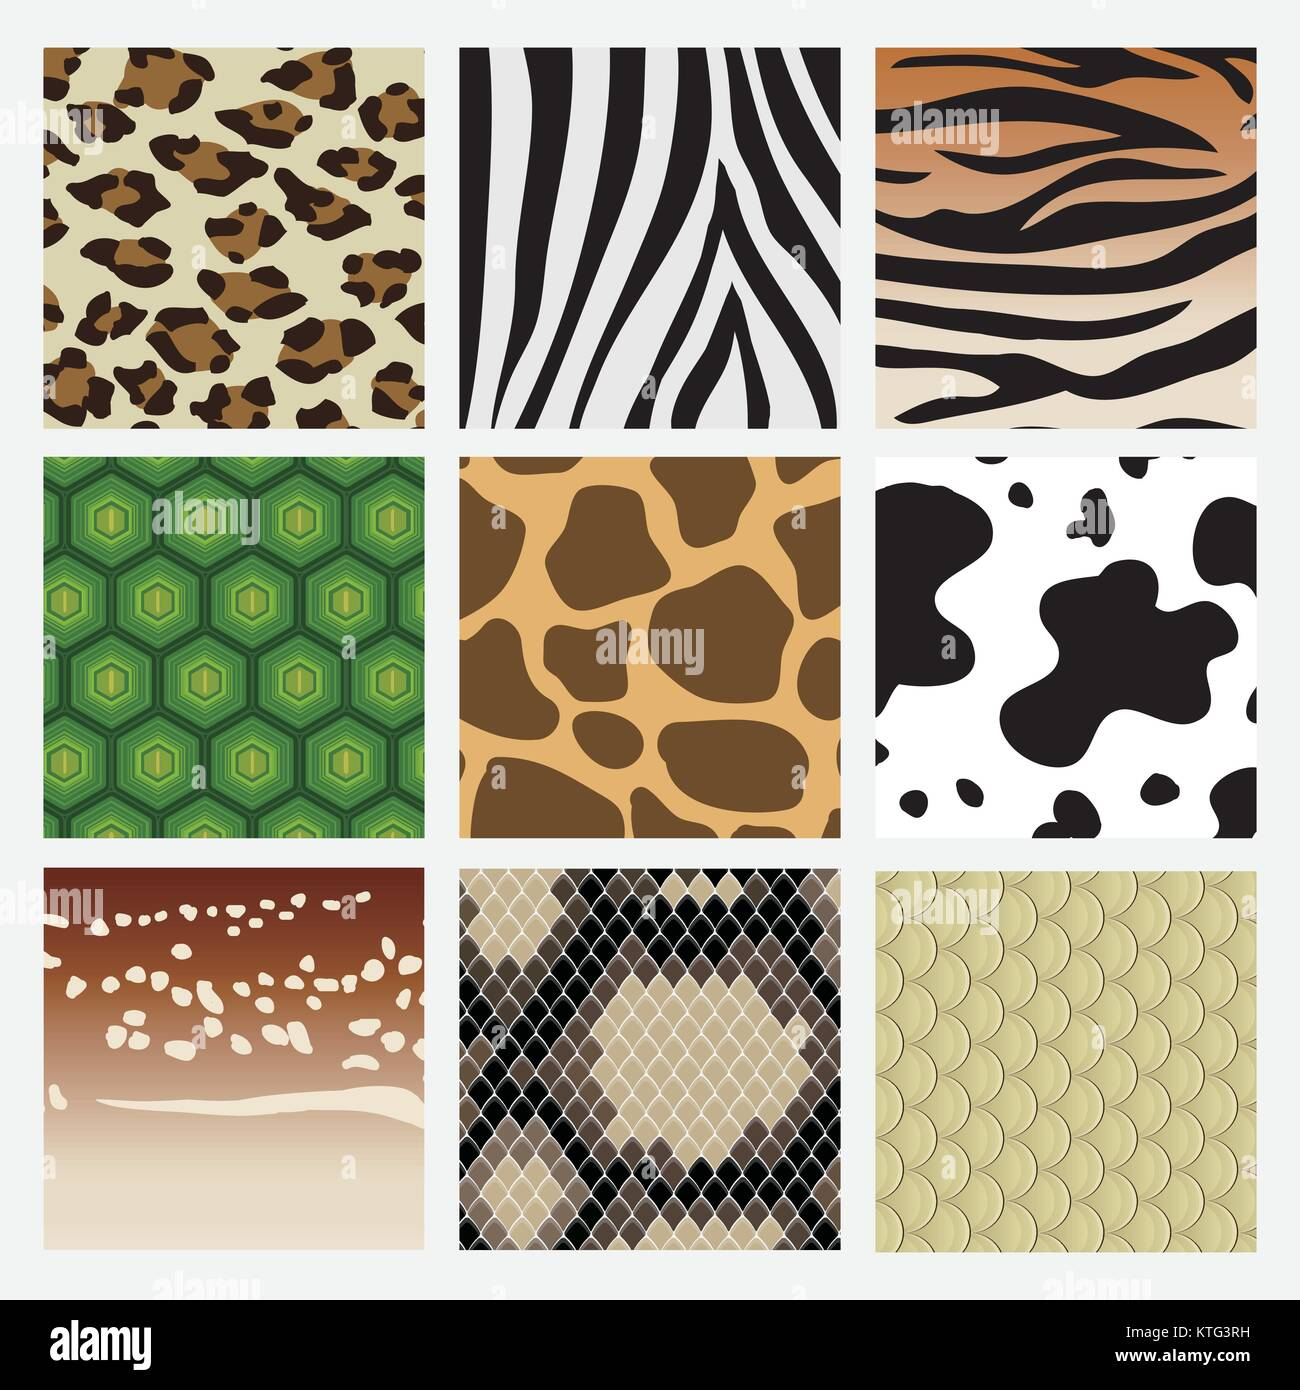 It is a pattern collection of animal skin. Including snake, deer tiger turtle giraffe cow zebra leopard. - Stock Vector